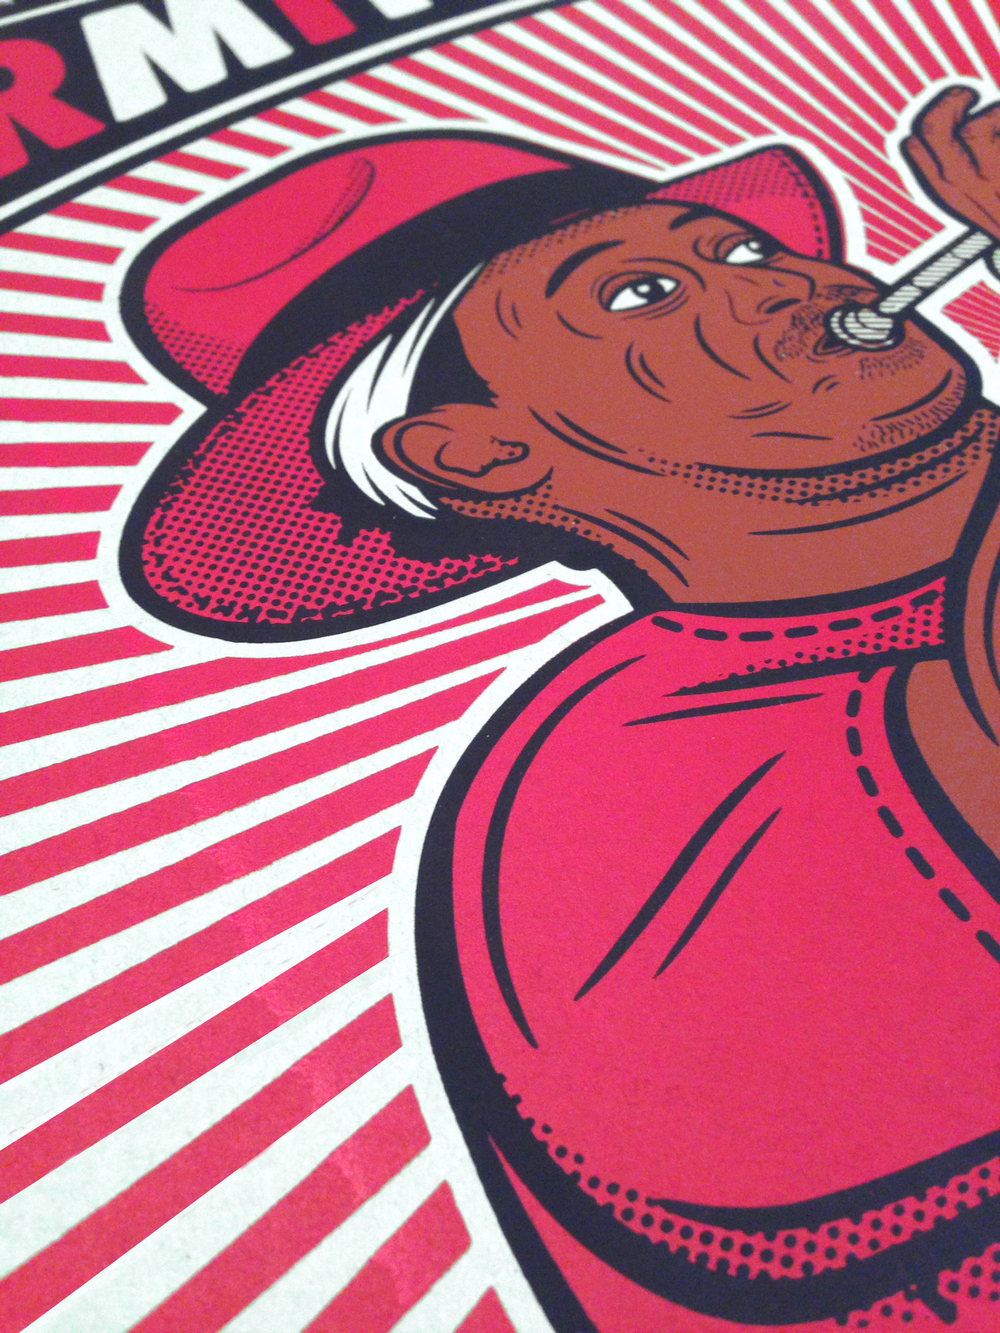 Kermit Ruffins Gig-Poster  [Image 2/3]  [18x24 / 3-Color]   Client: Evanston Space / Kermit Ruffins    PURCHASE A PRINT